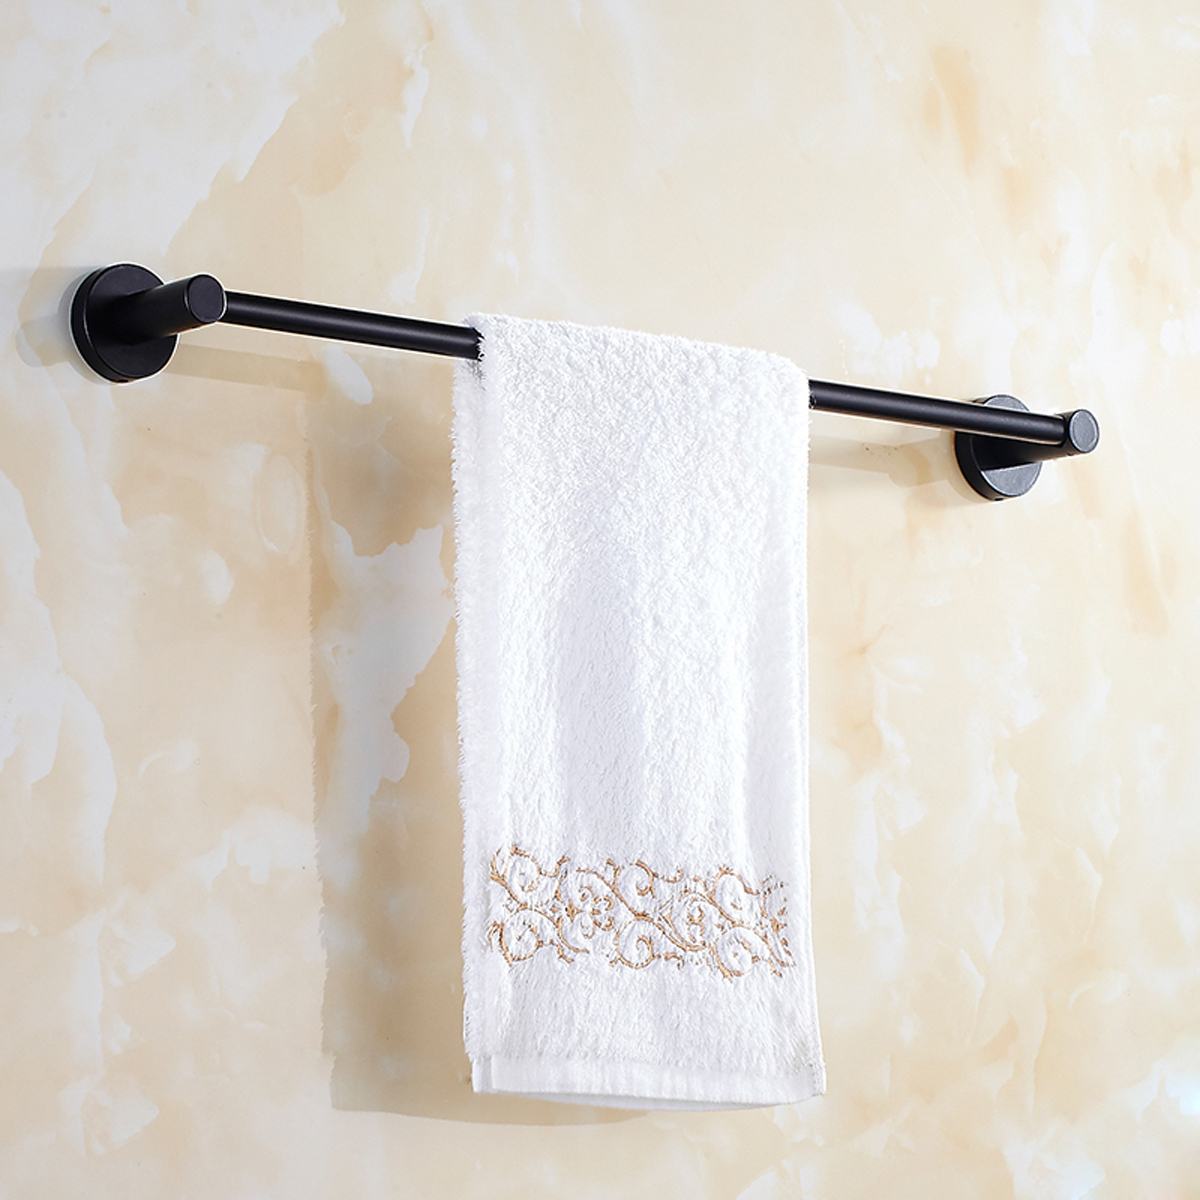 Black Hand Towel Rail Rack Hook Toilet Brush Paper Holder for Bathroom Accessories